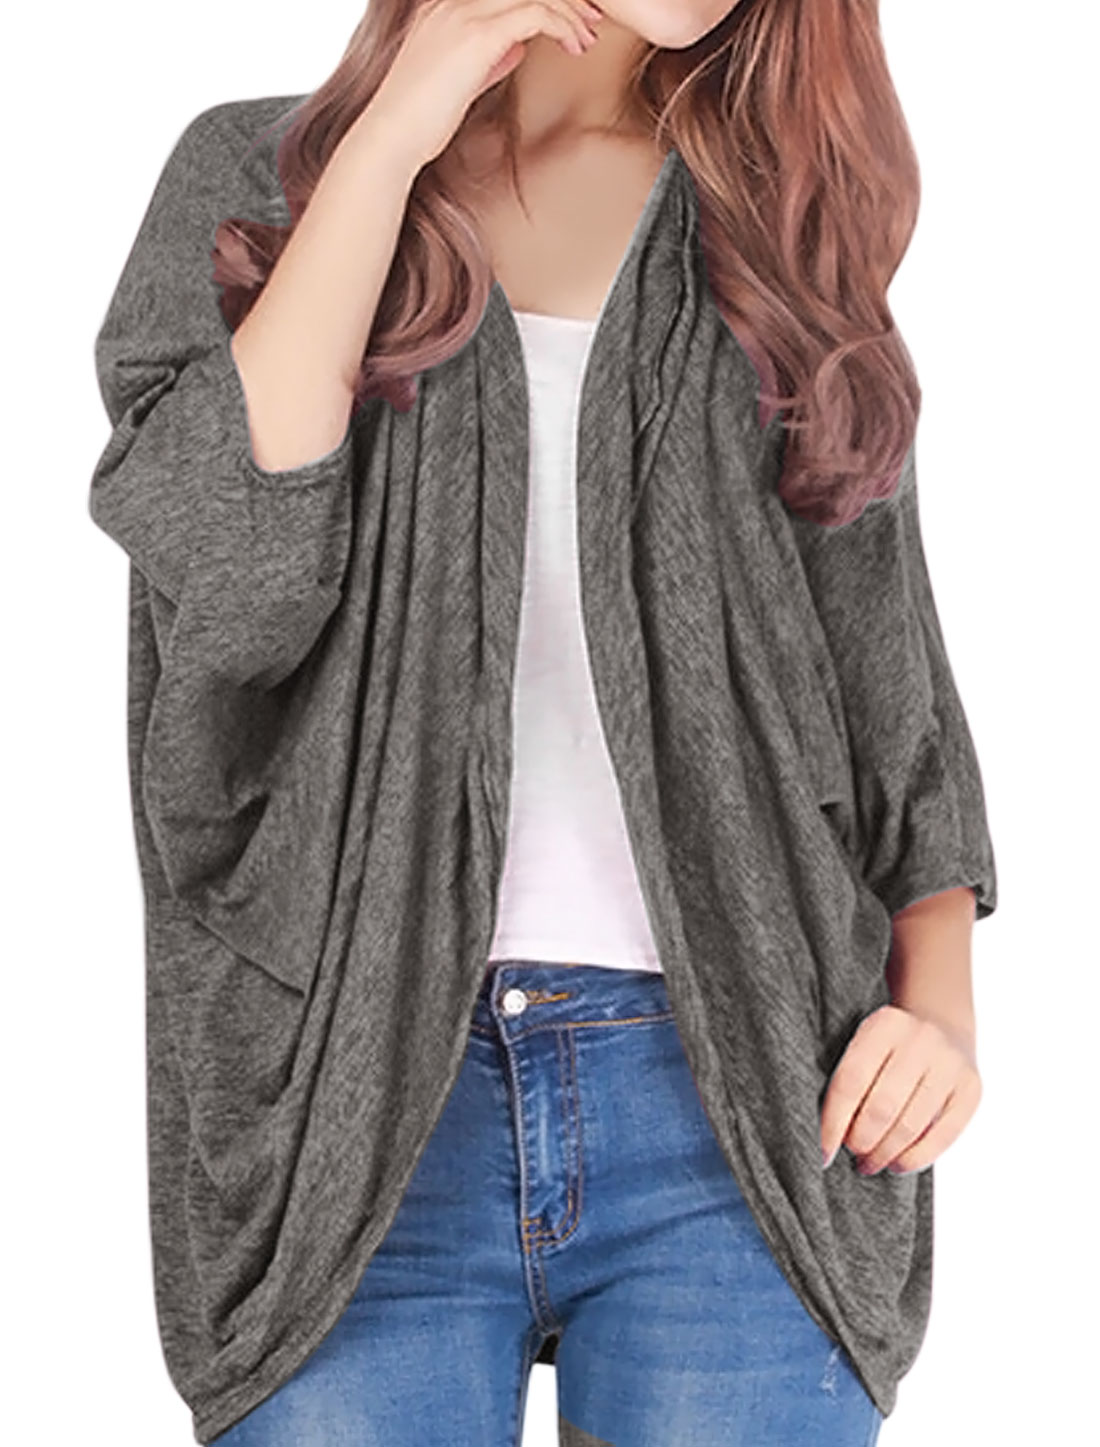 Women 3/4 Batwing Sleeves Space Dye Pleated Front Tunic Cardigan Gray XS